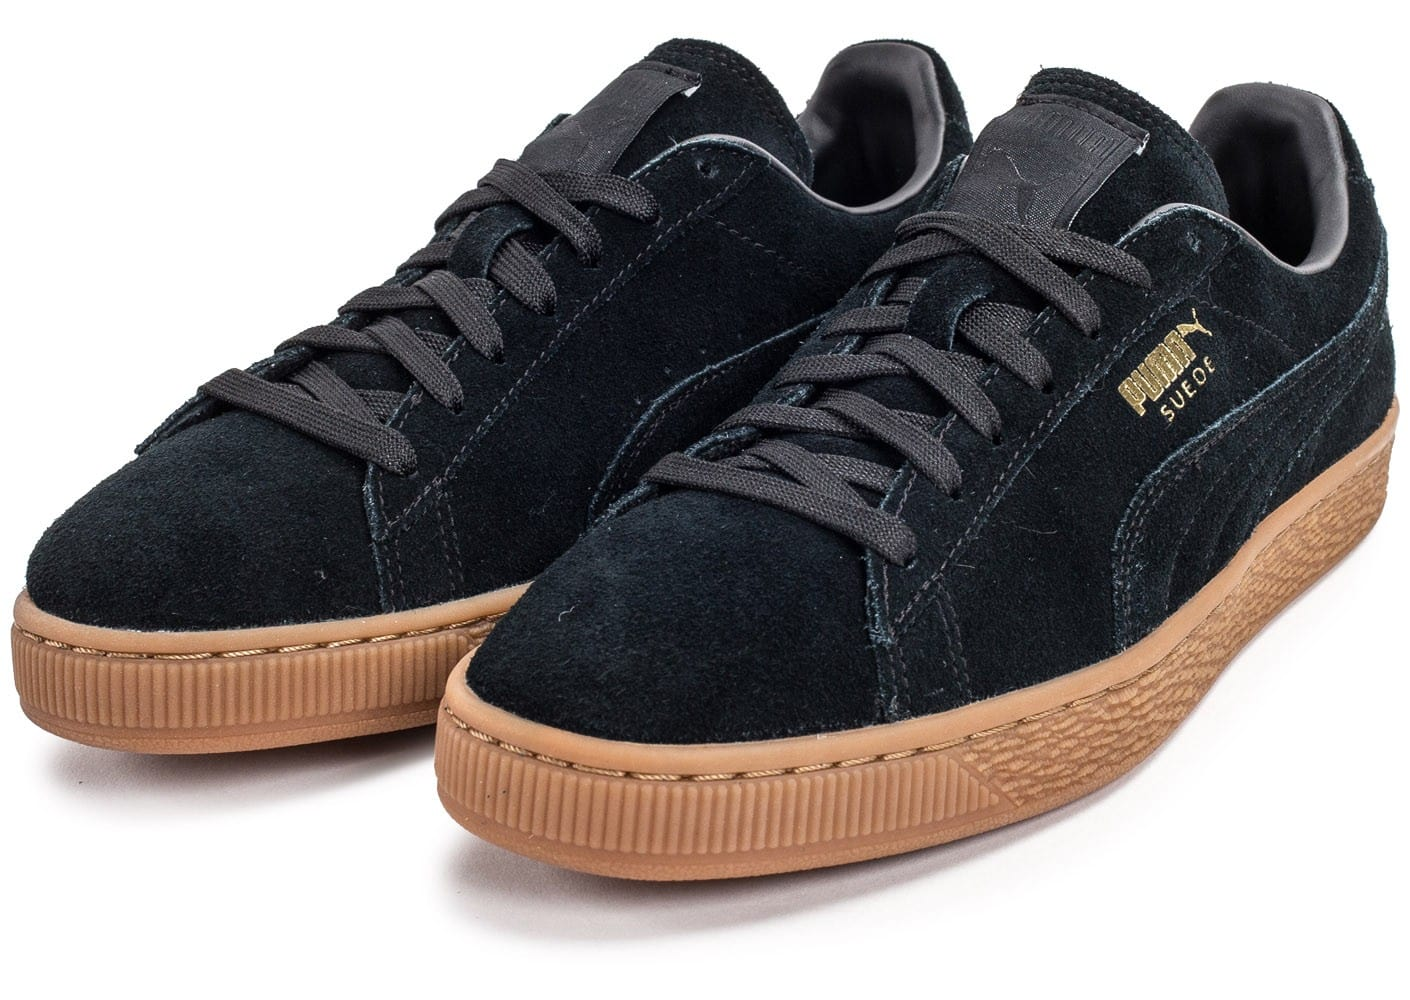 puma suede classic noire gum chaussures homme chausport. Black Bedroom Furniture Sets. Home Design Ideas